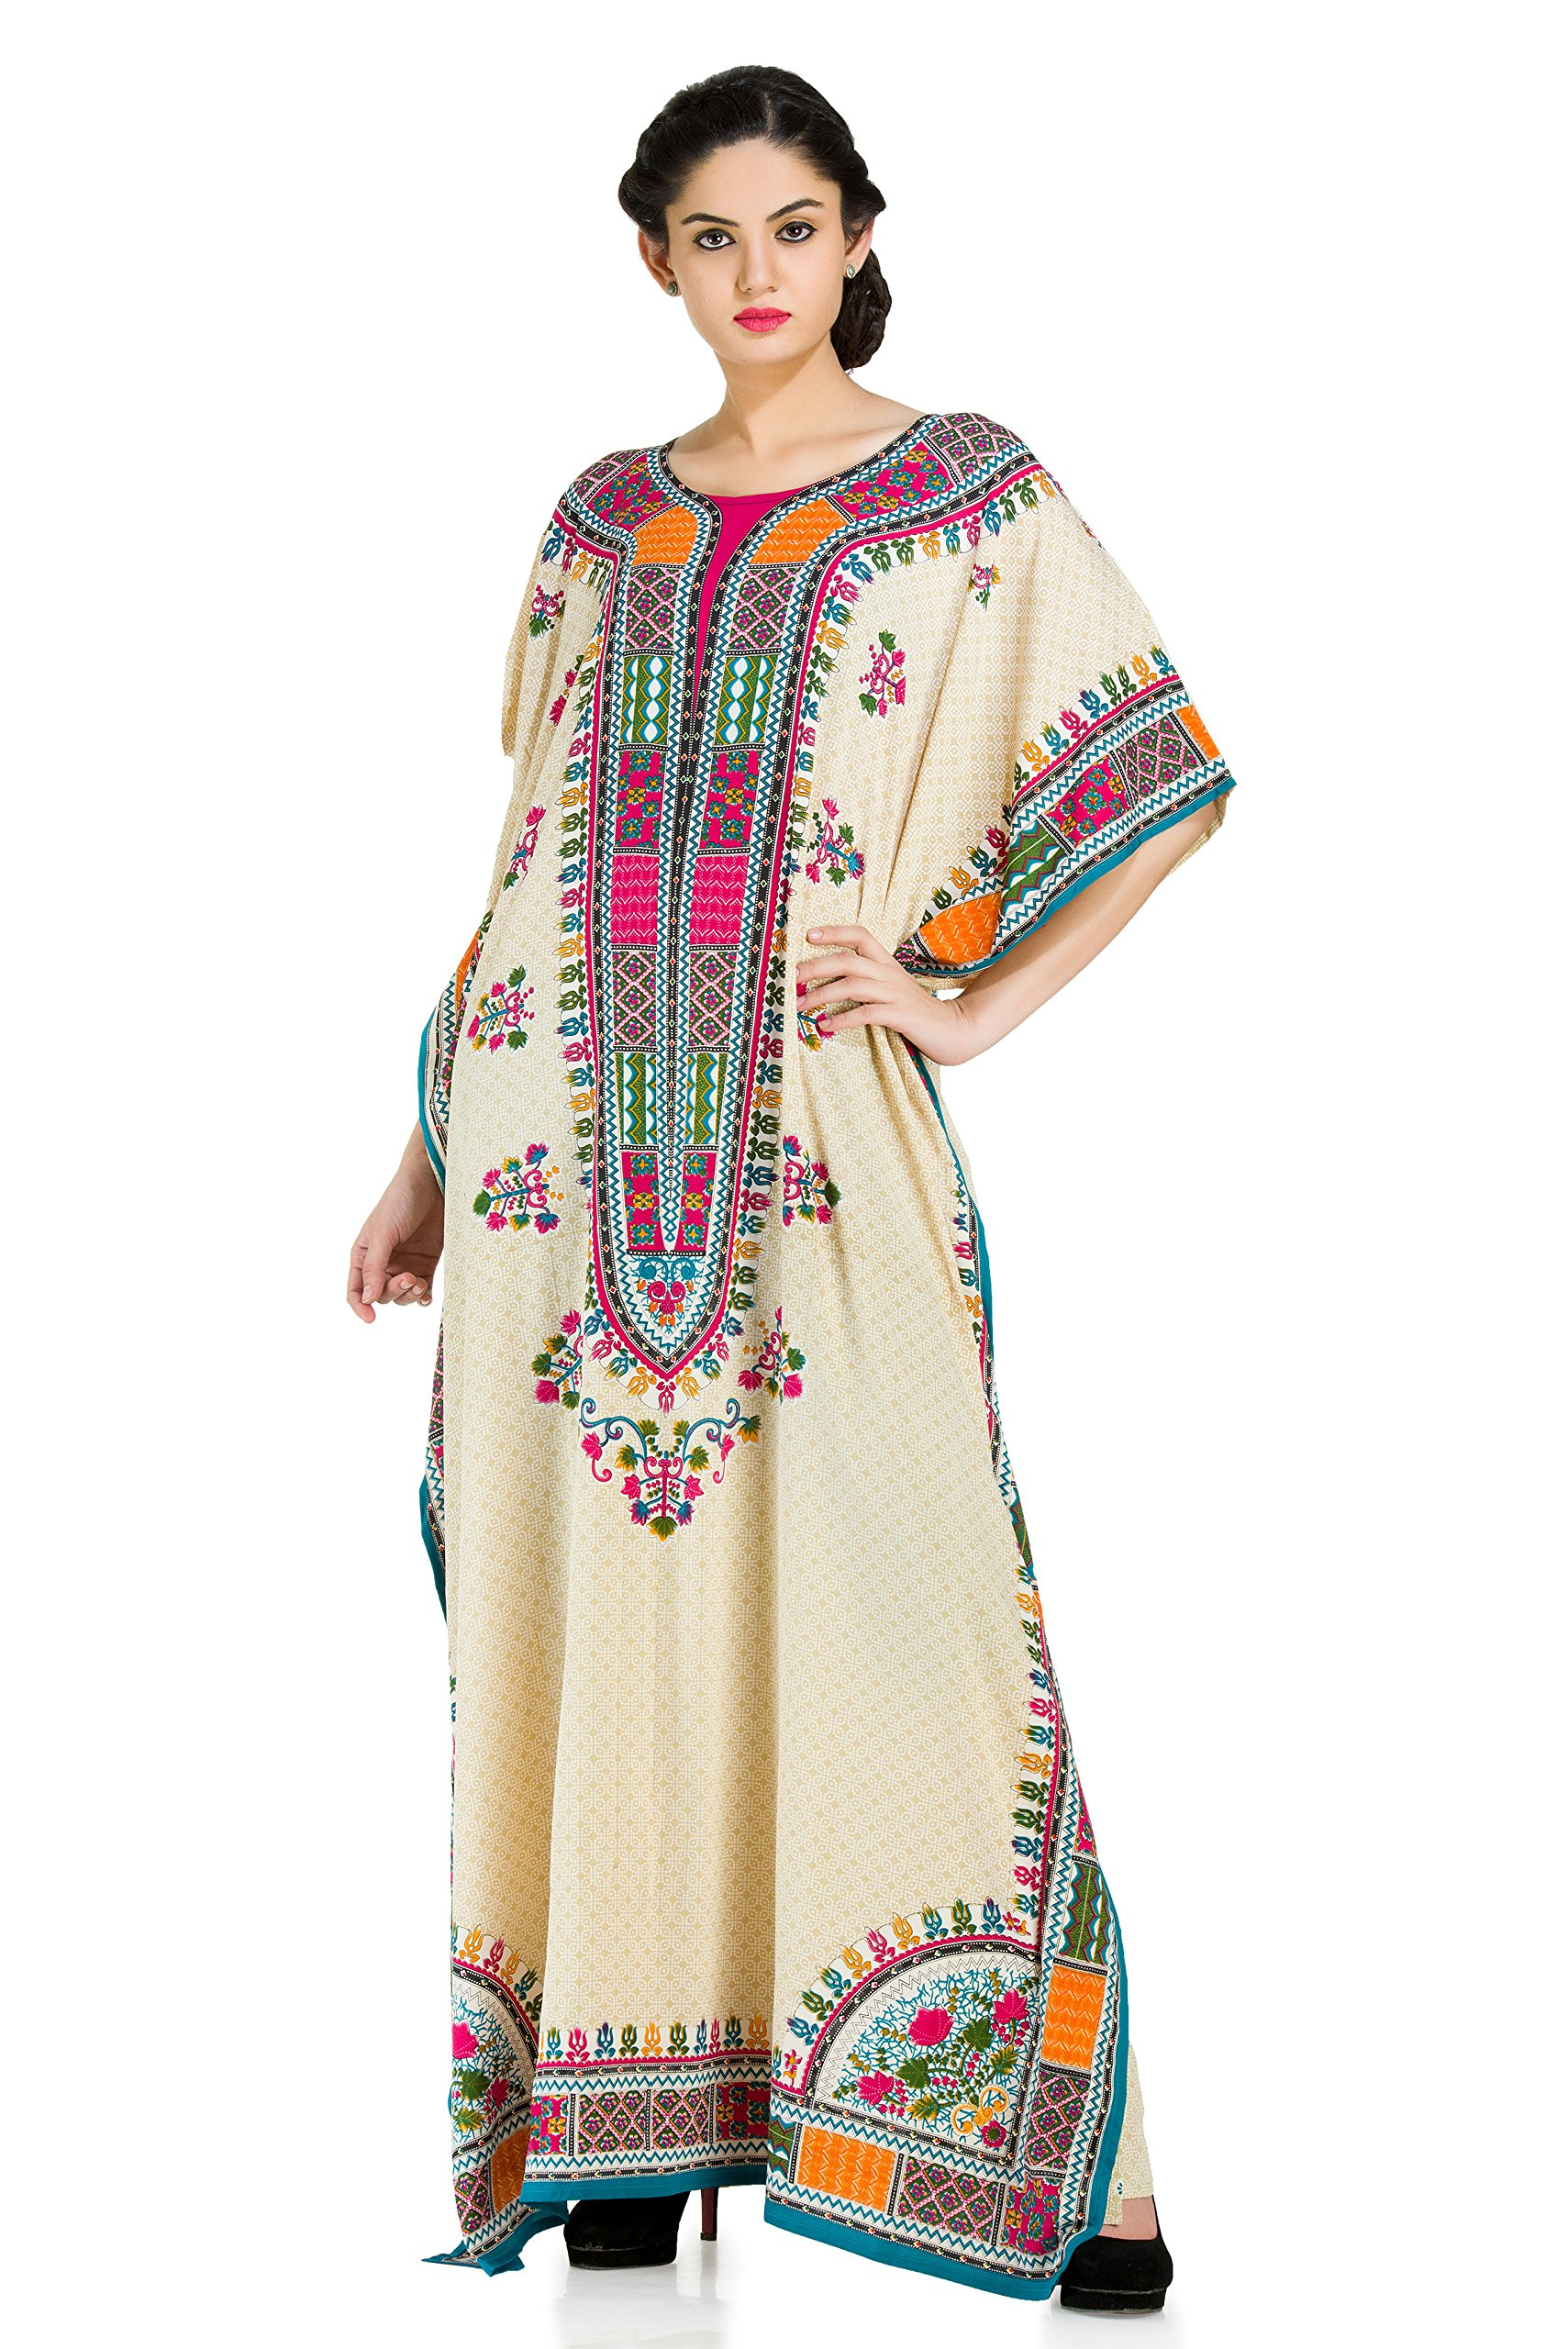 Goood Times Plus Size Boho-Chic Beige Color Caftan-Style Seaside Adventure Cover-UP Dress,Beige,One Size